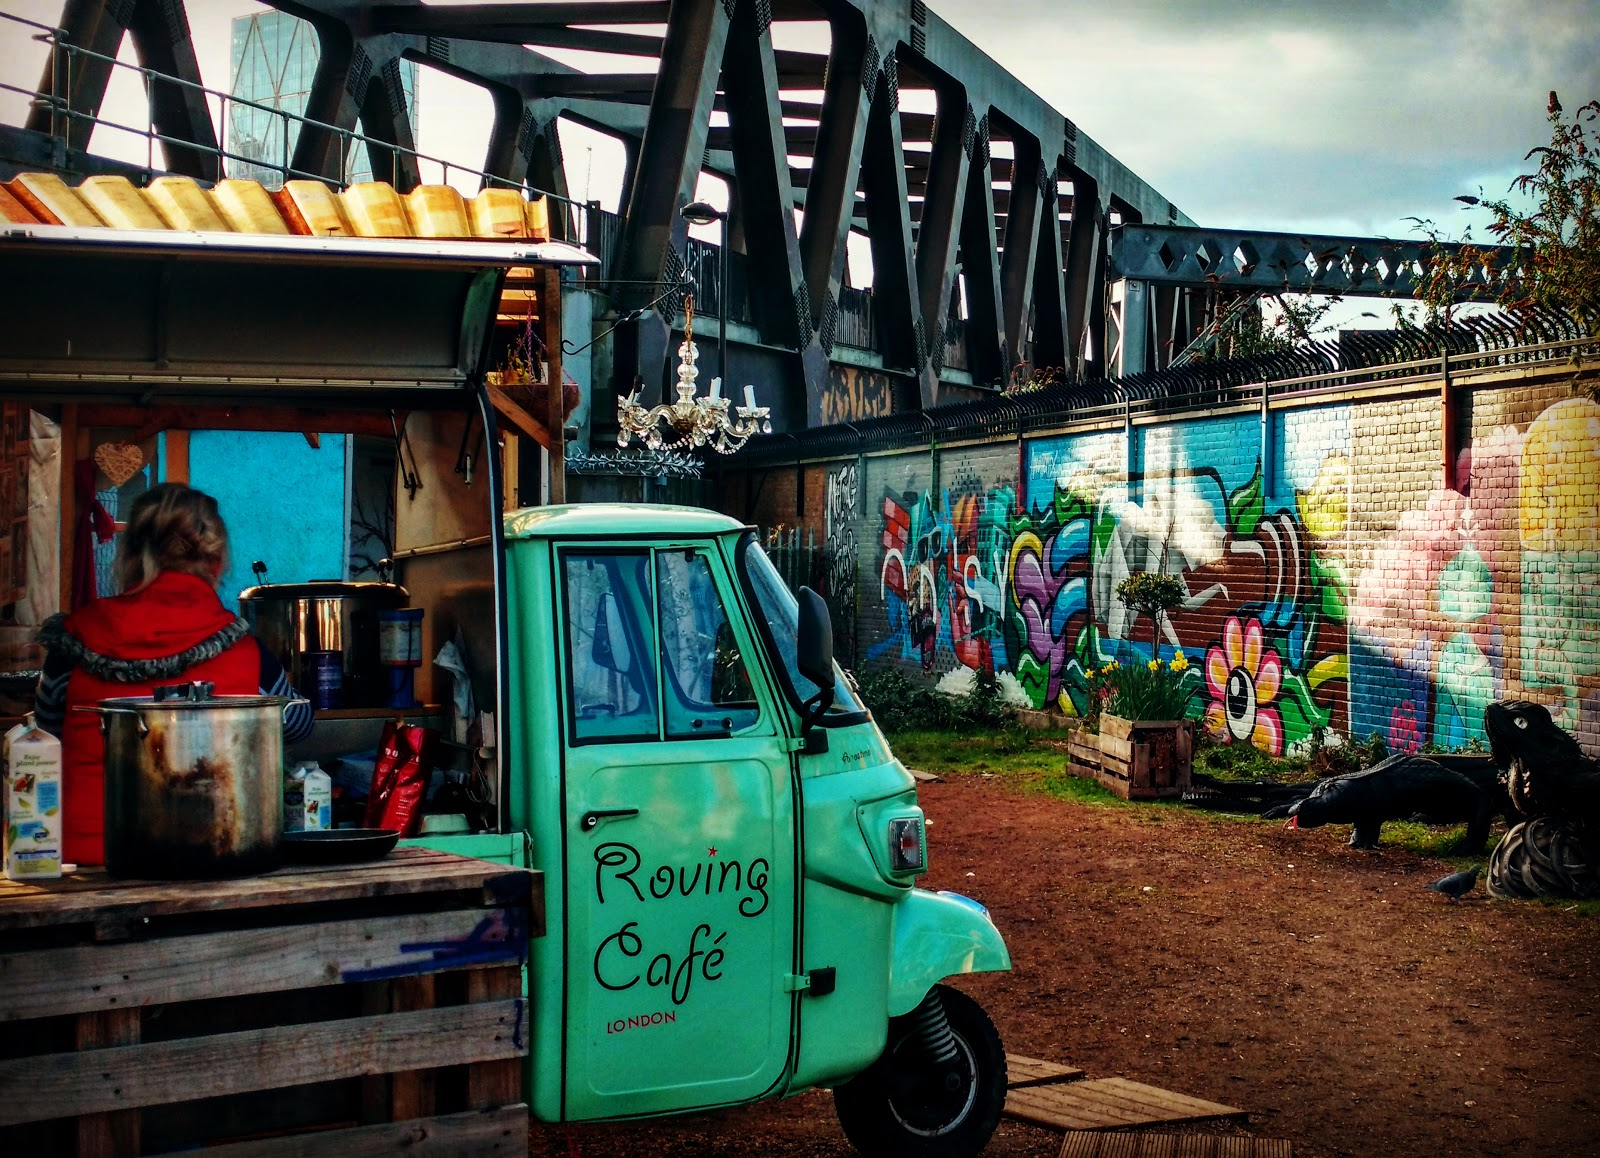 Roving Cafe, where community gardens in London remind me of my travelling days.